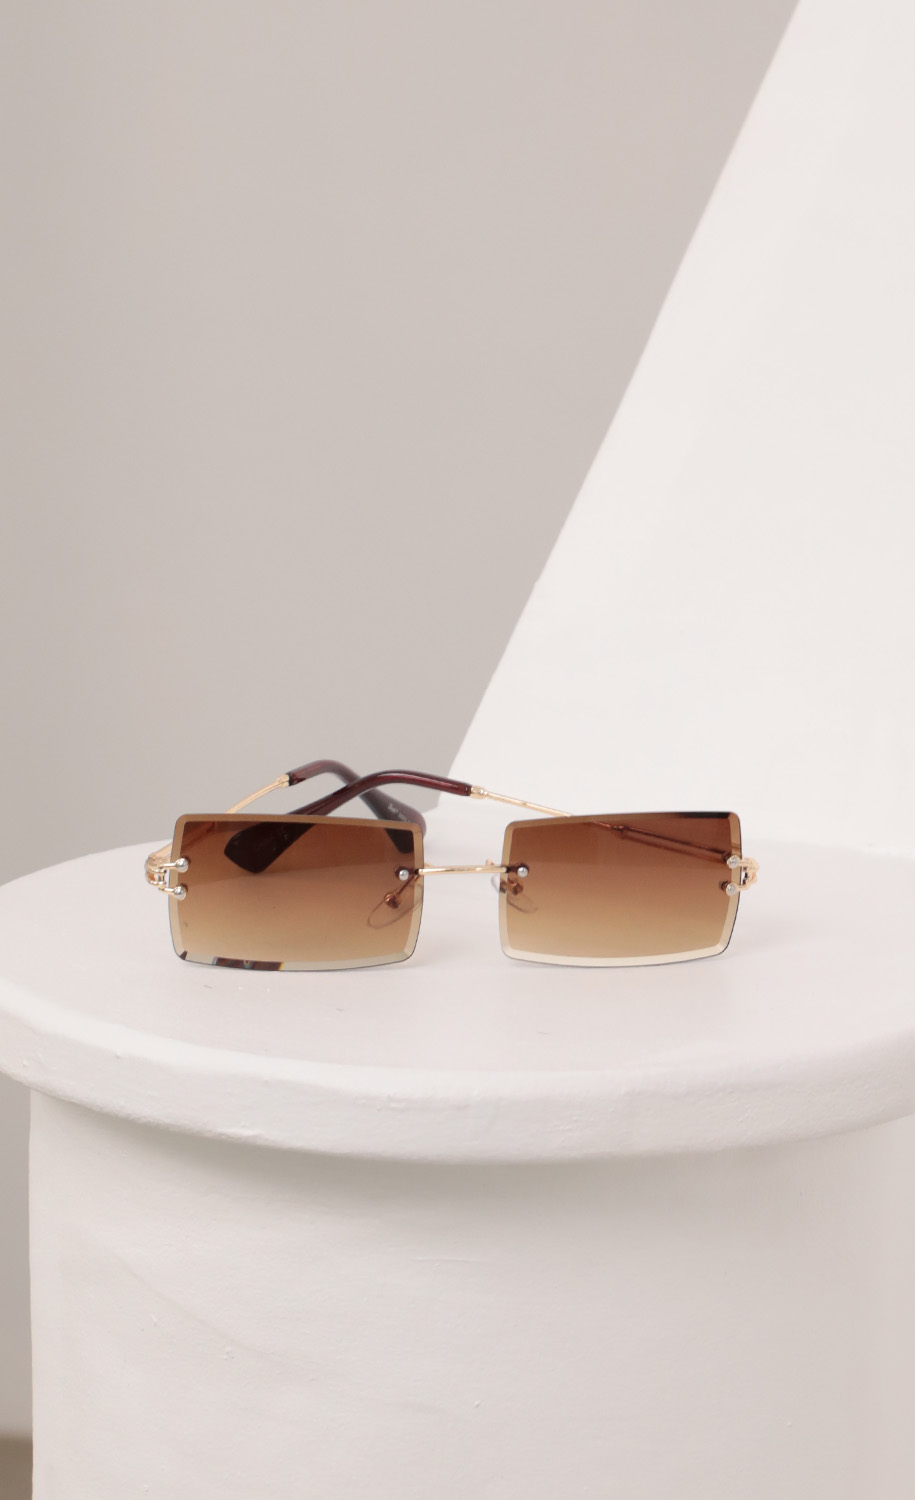 90s Baby Rectangle Sunglasses in Brown Ombre